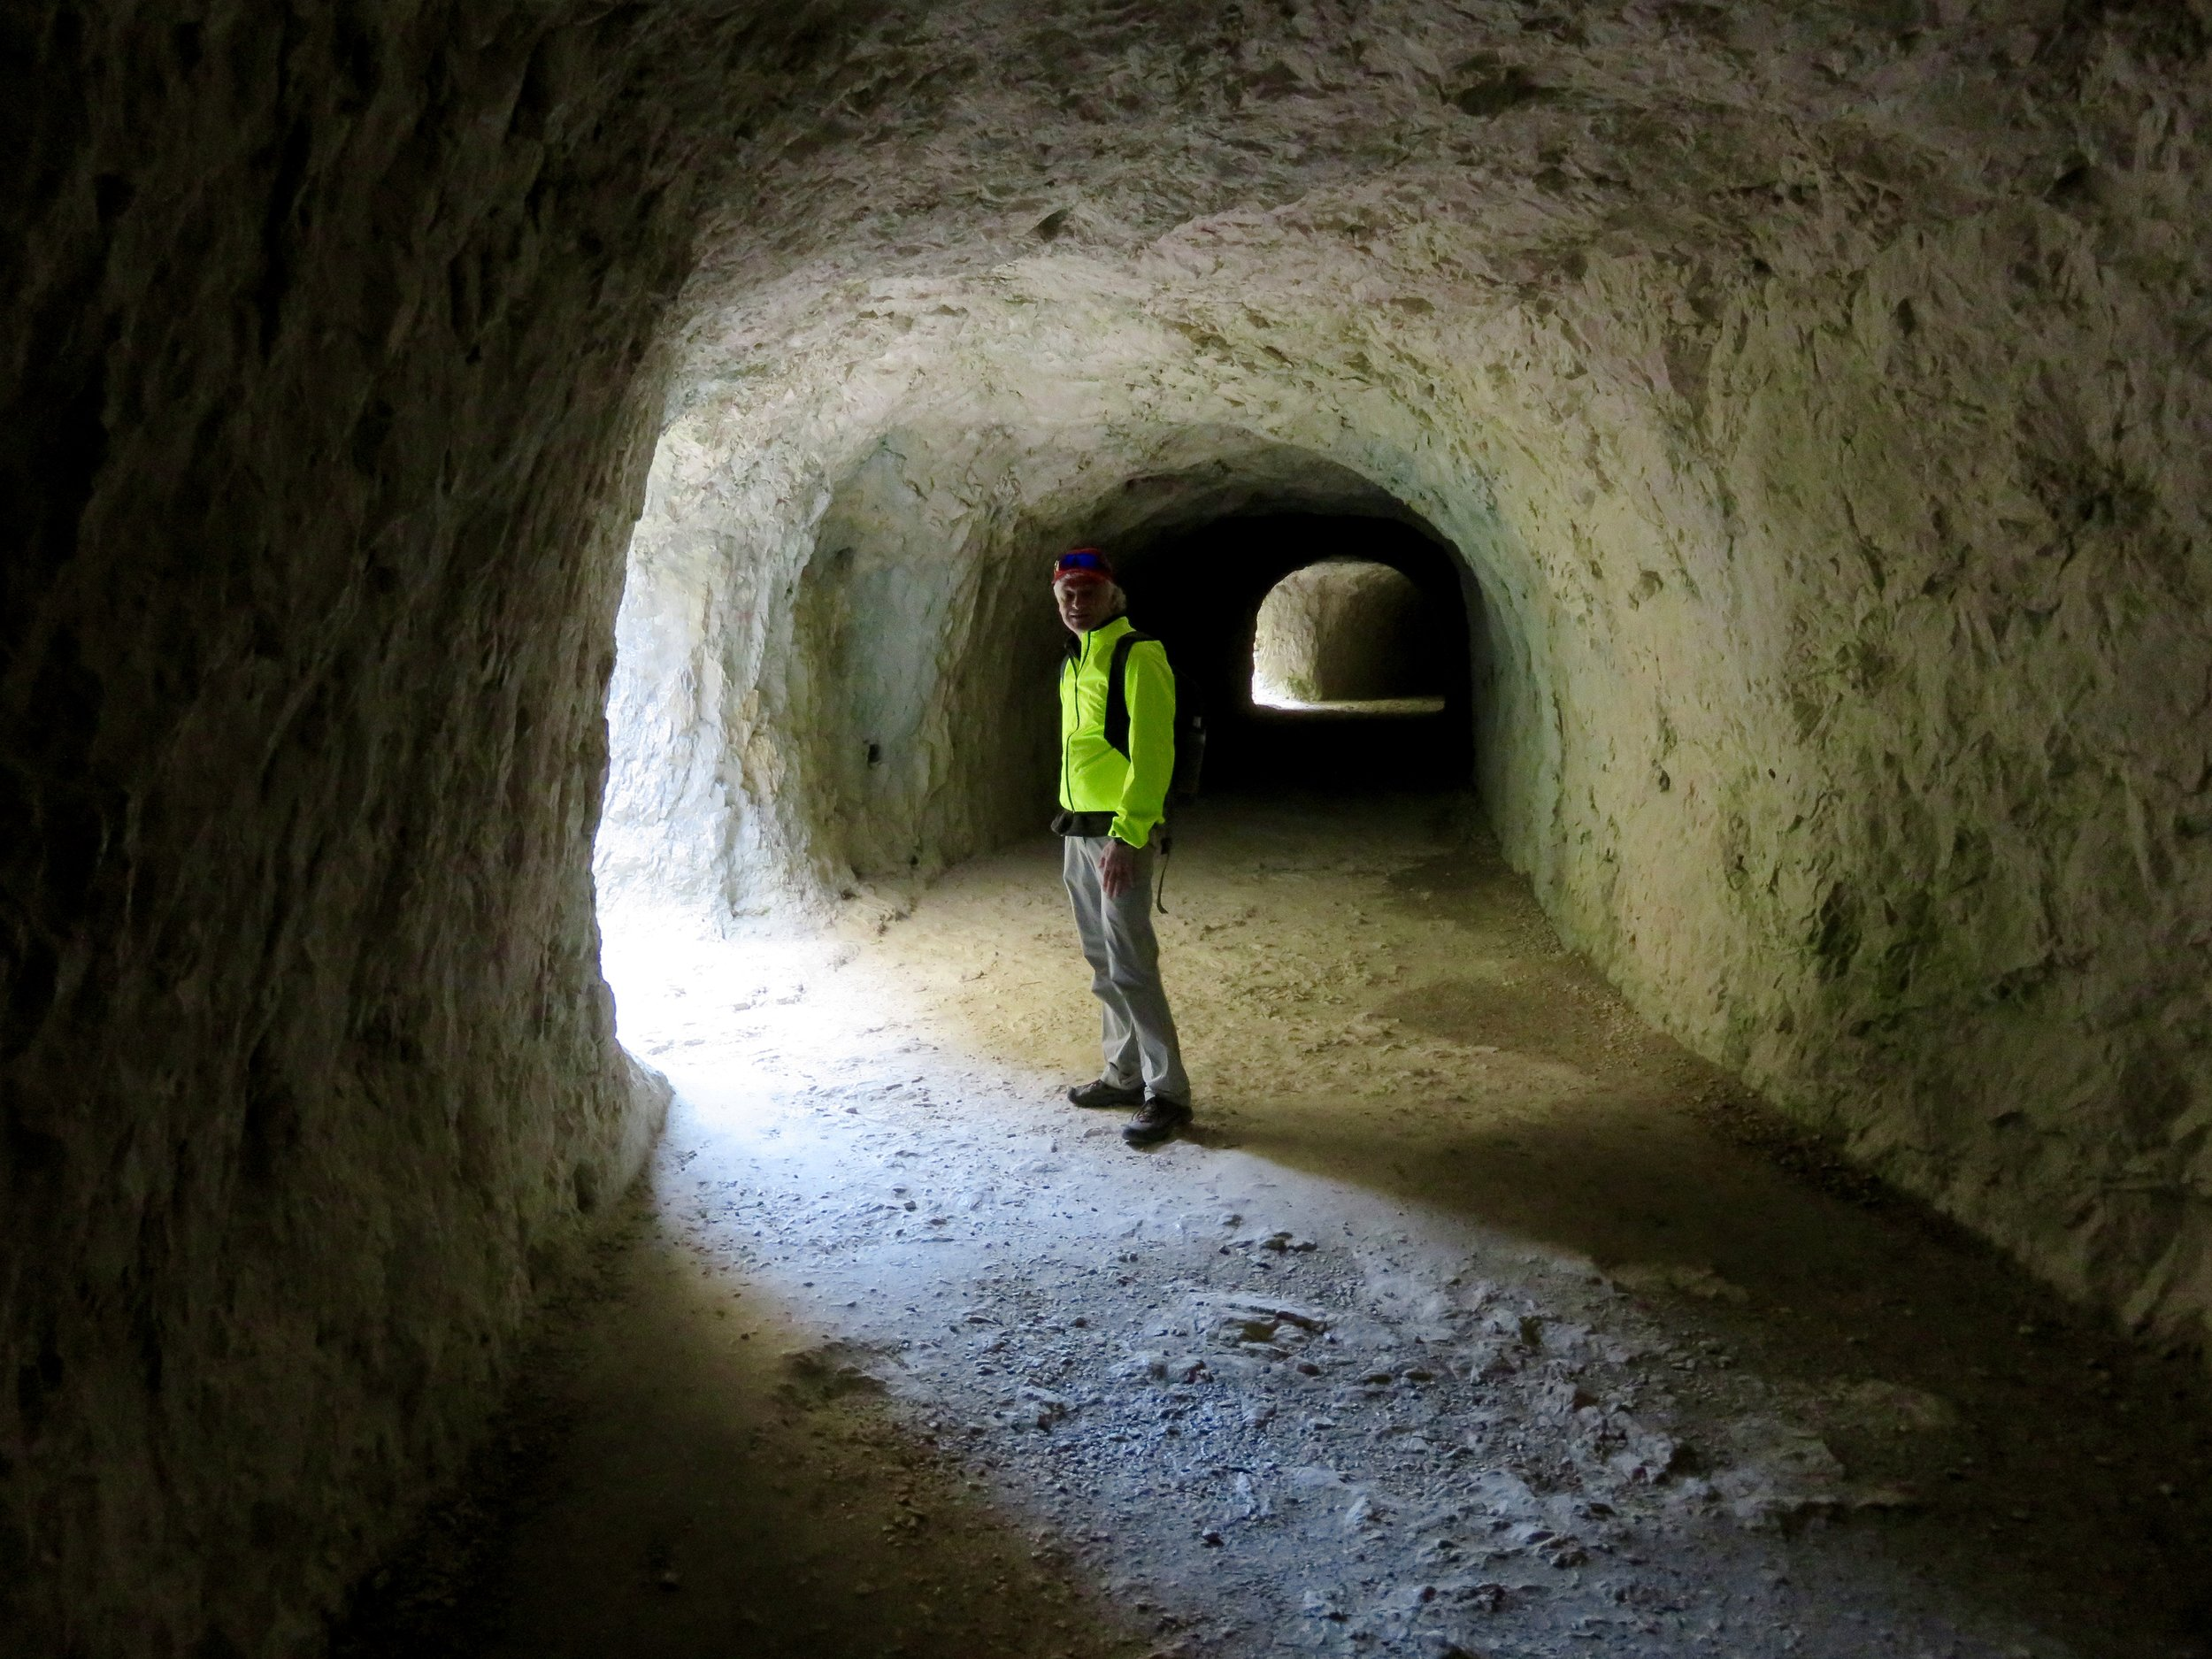 Hiking through tunnels carved in rock!